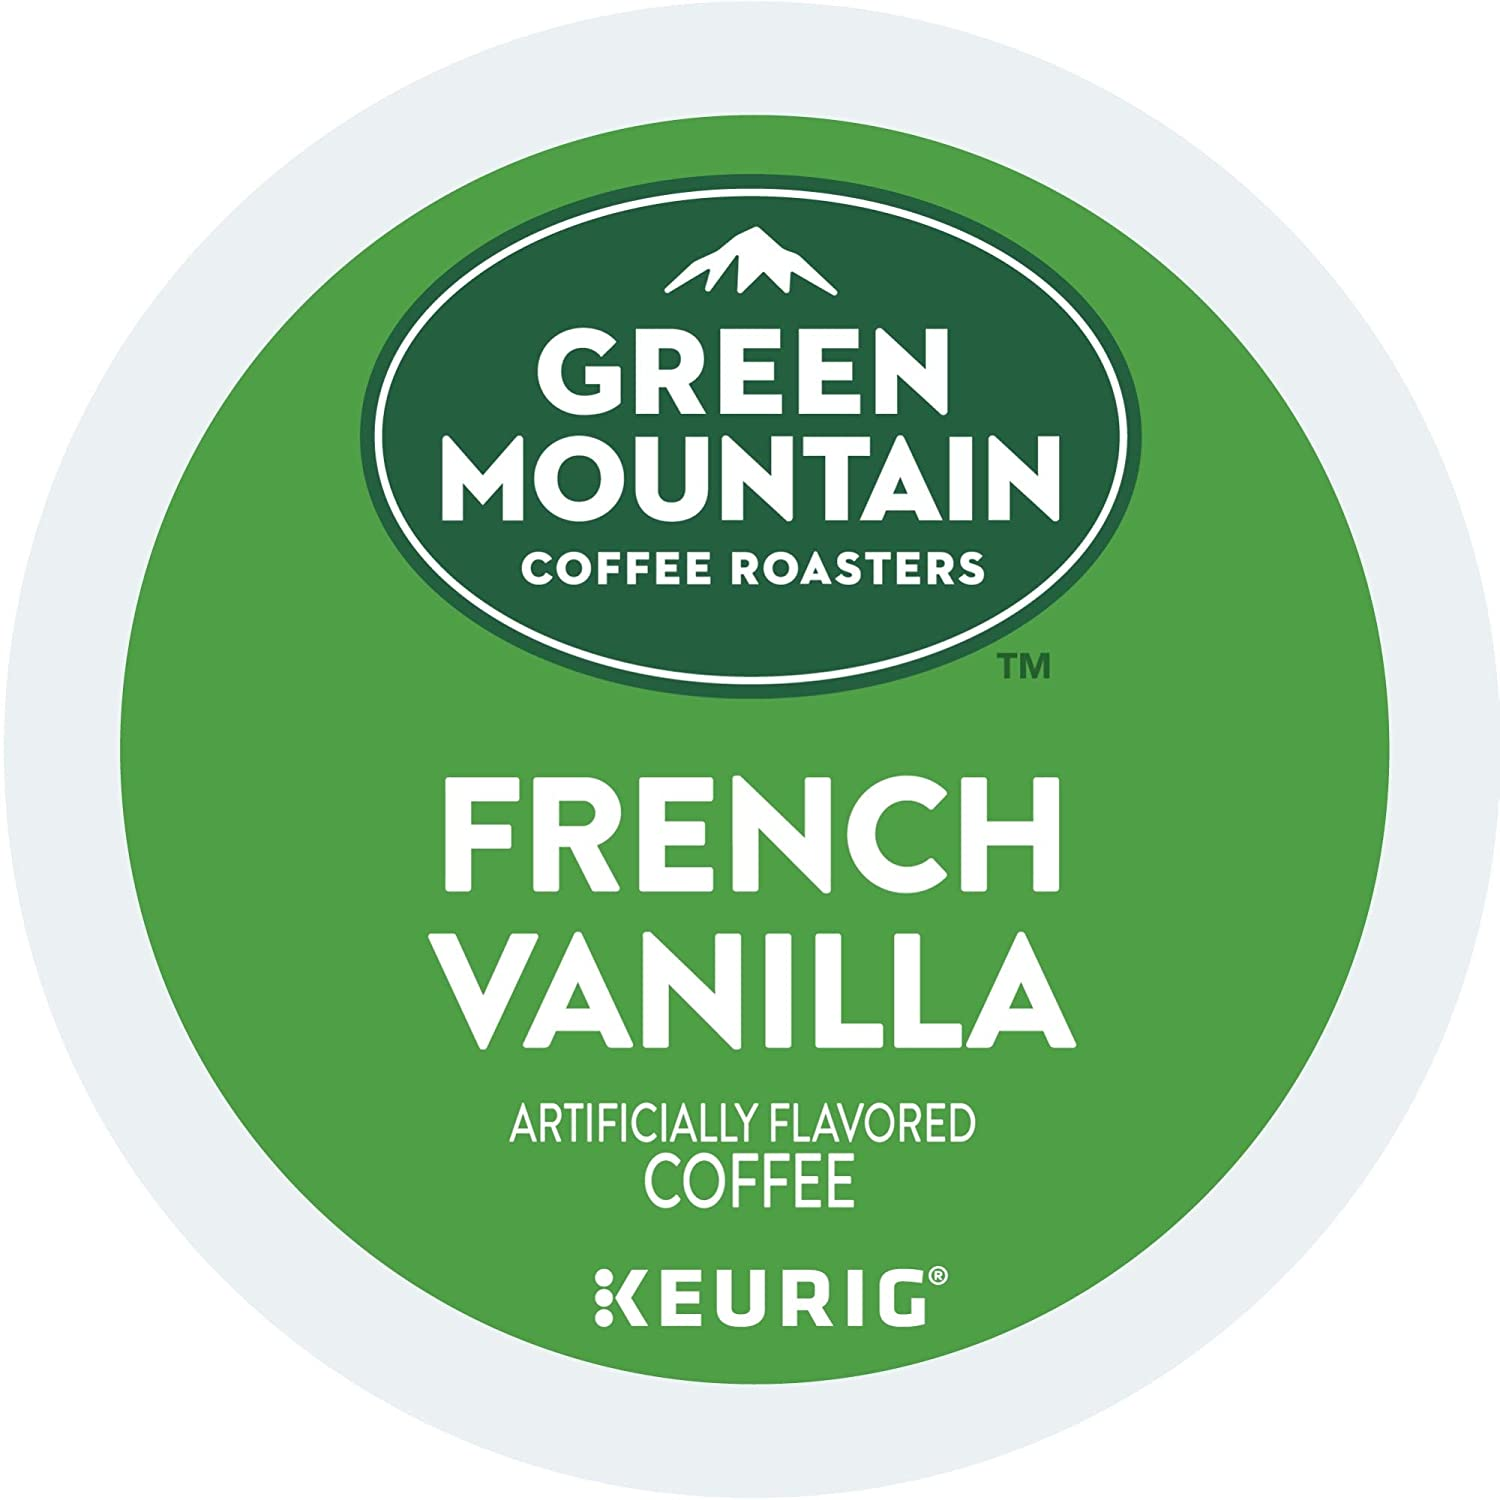 Green Mountain Coffee Roasters French Vanilla, Single-Serve Keurig K-Cup Pods, Flavored Light Roast Coffee, 96 Count